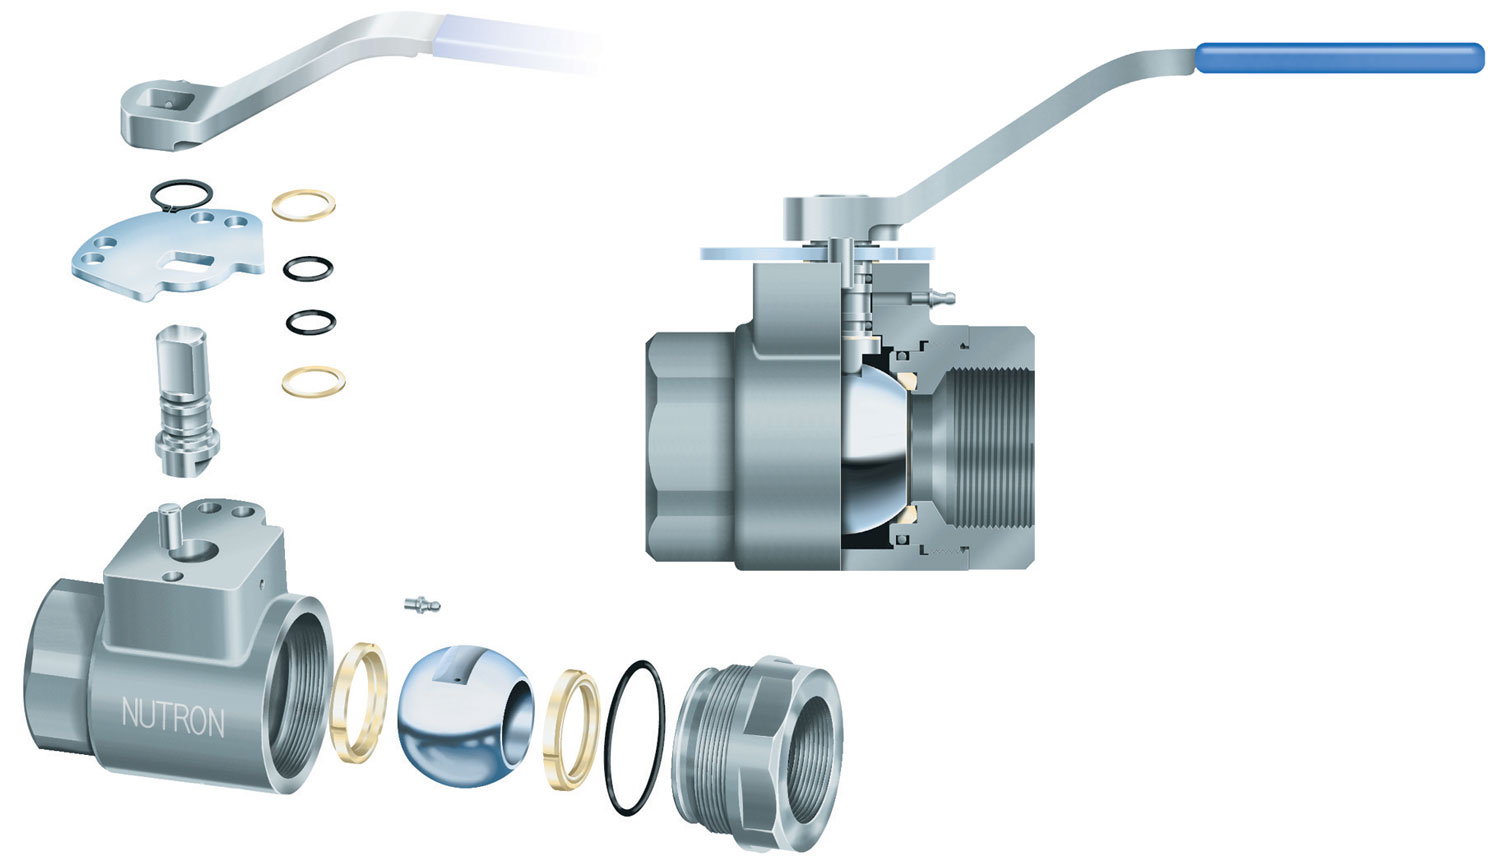 Nutron industrial ball valve